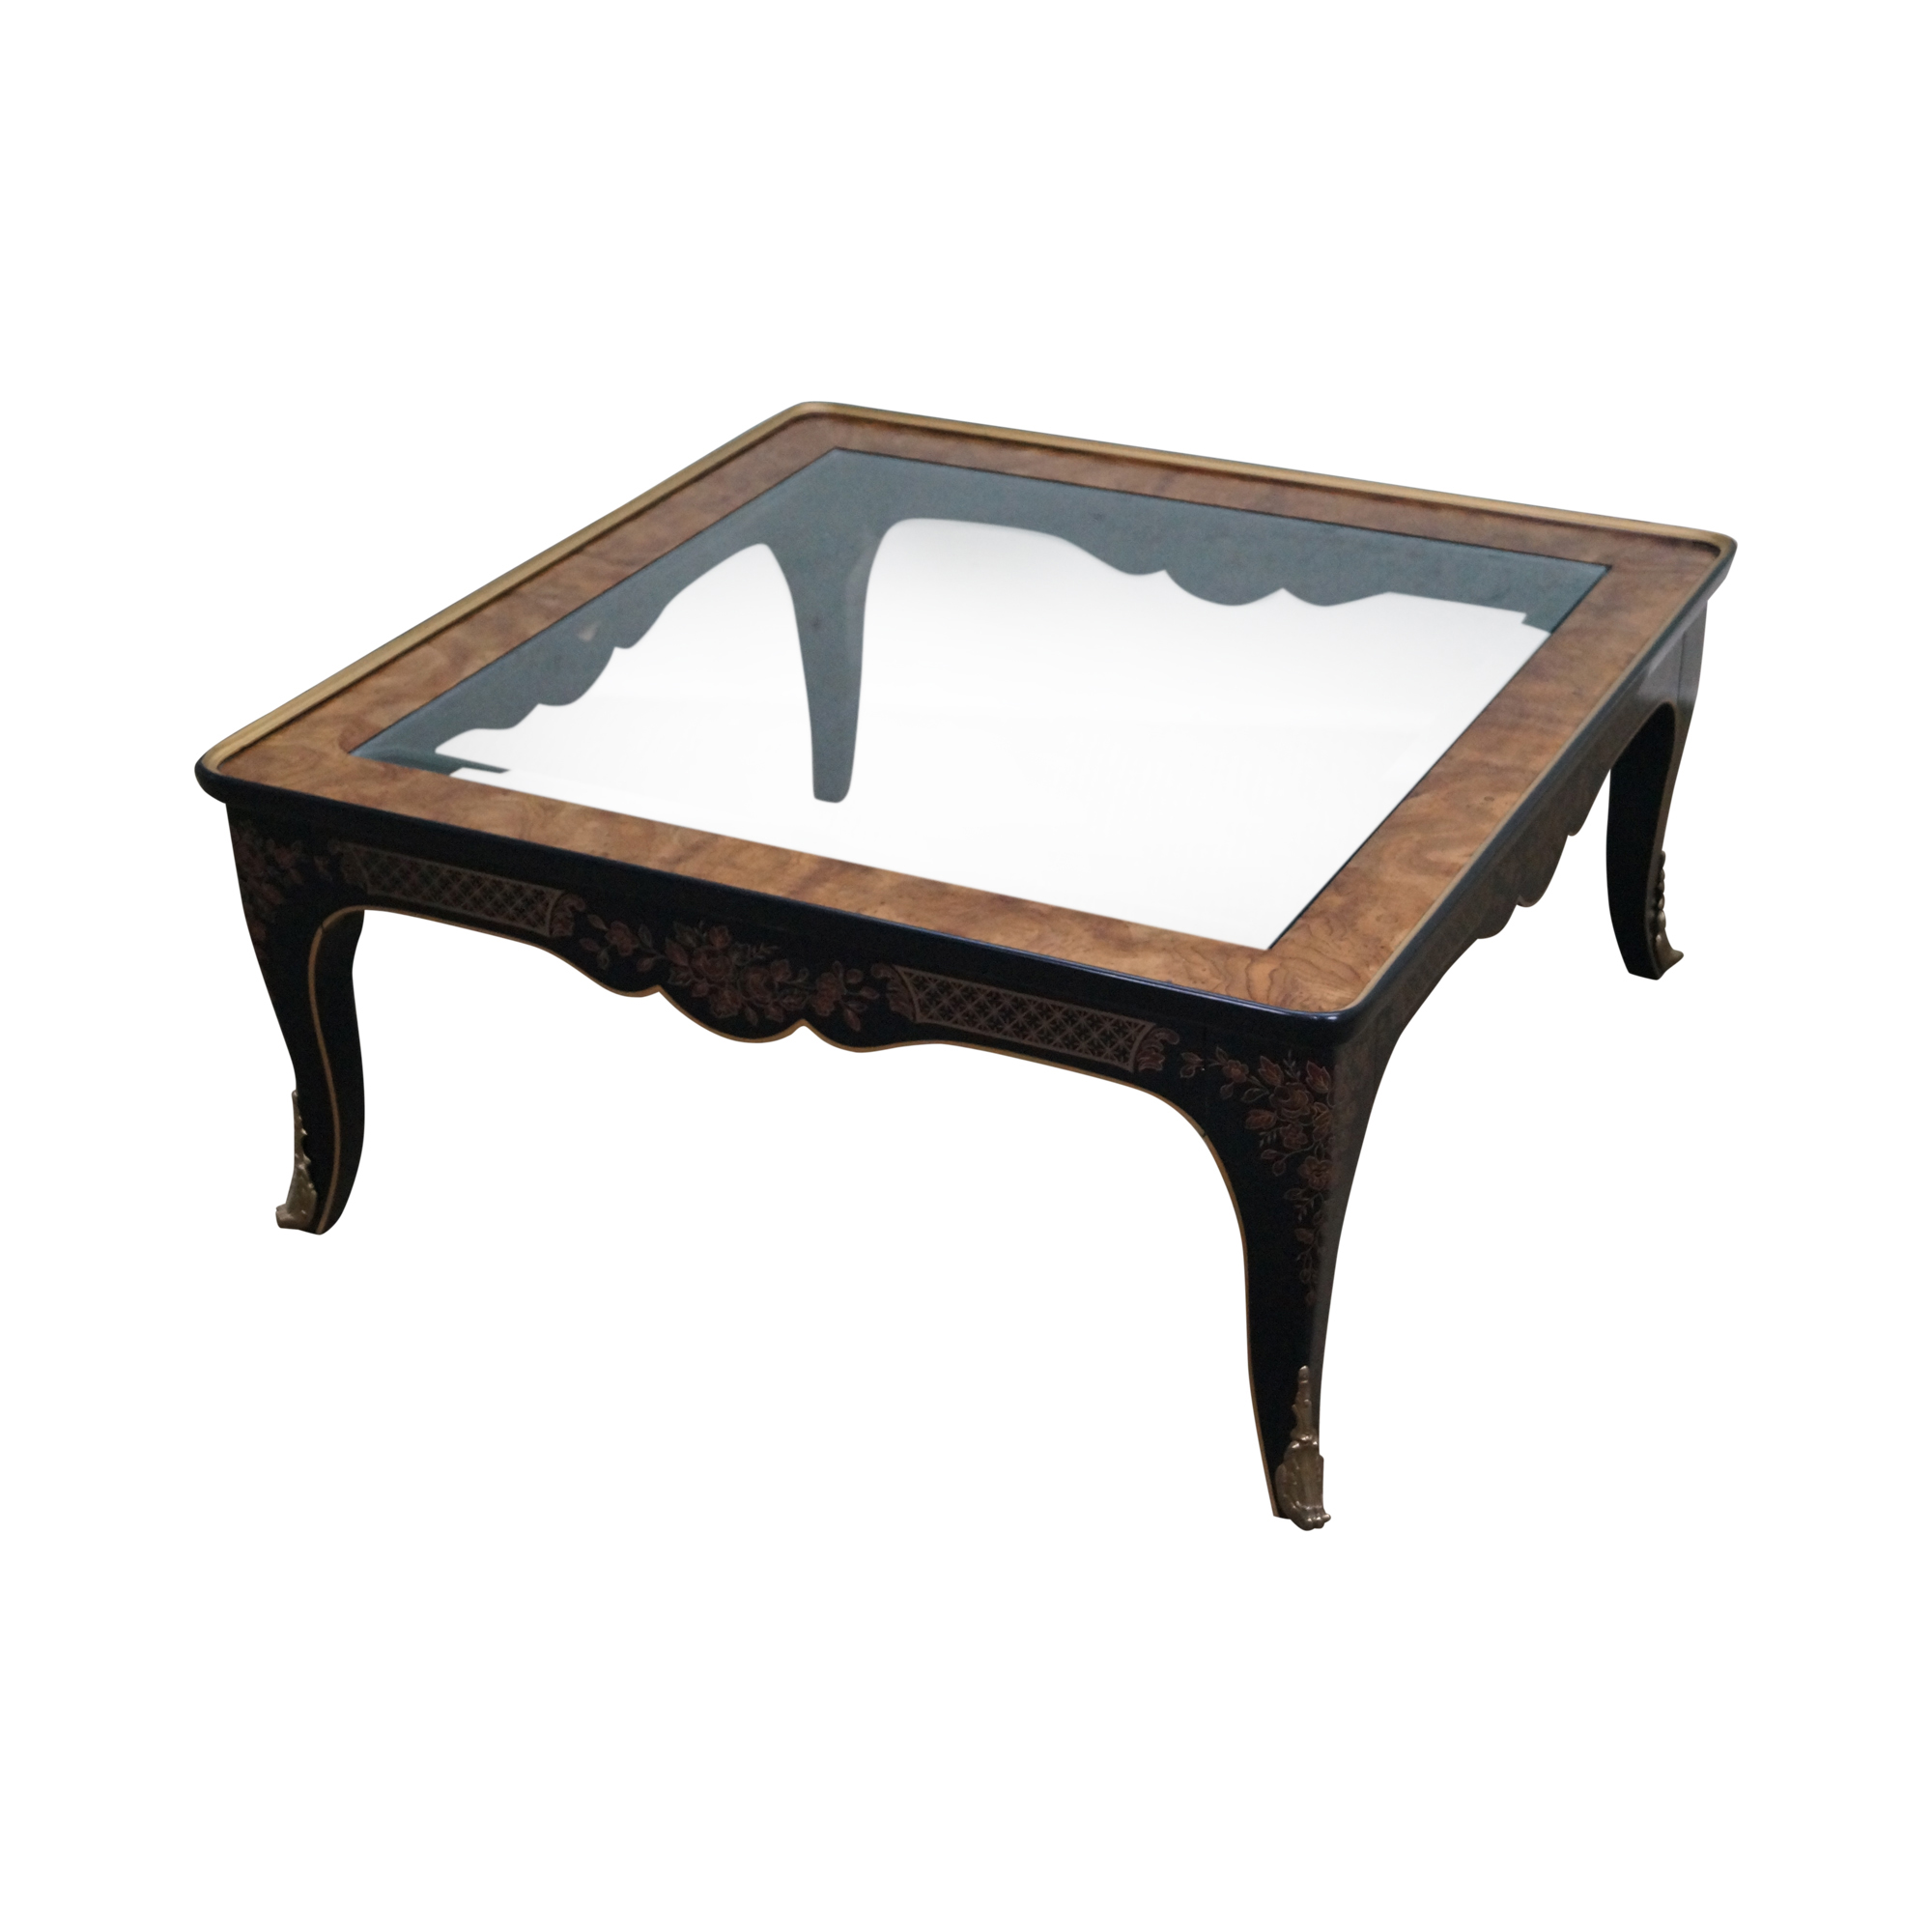 Drexel Heritage Et Cetera Burlwood Coffee Table